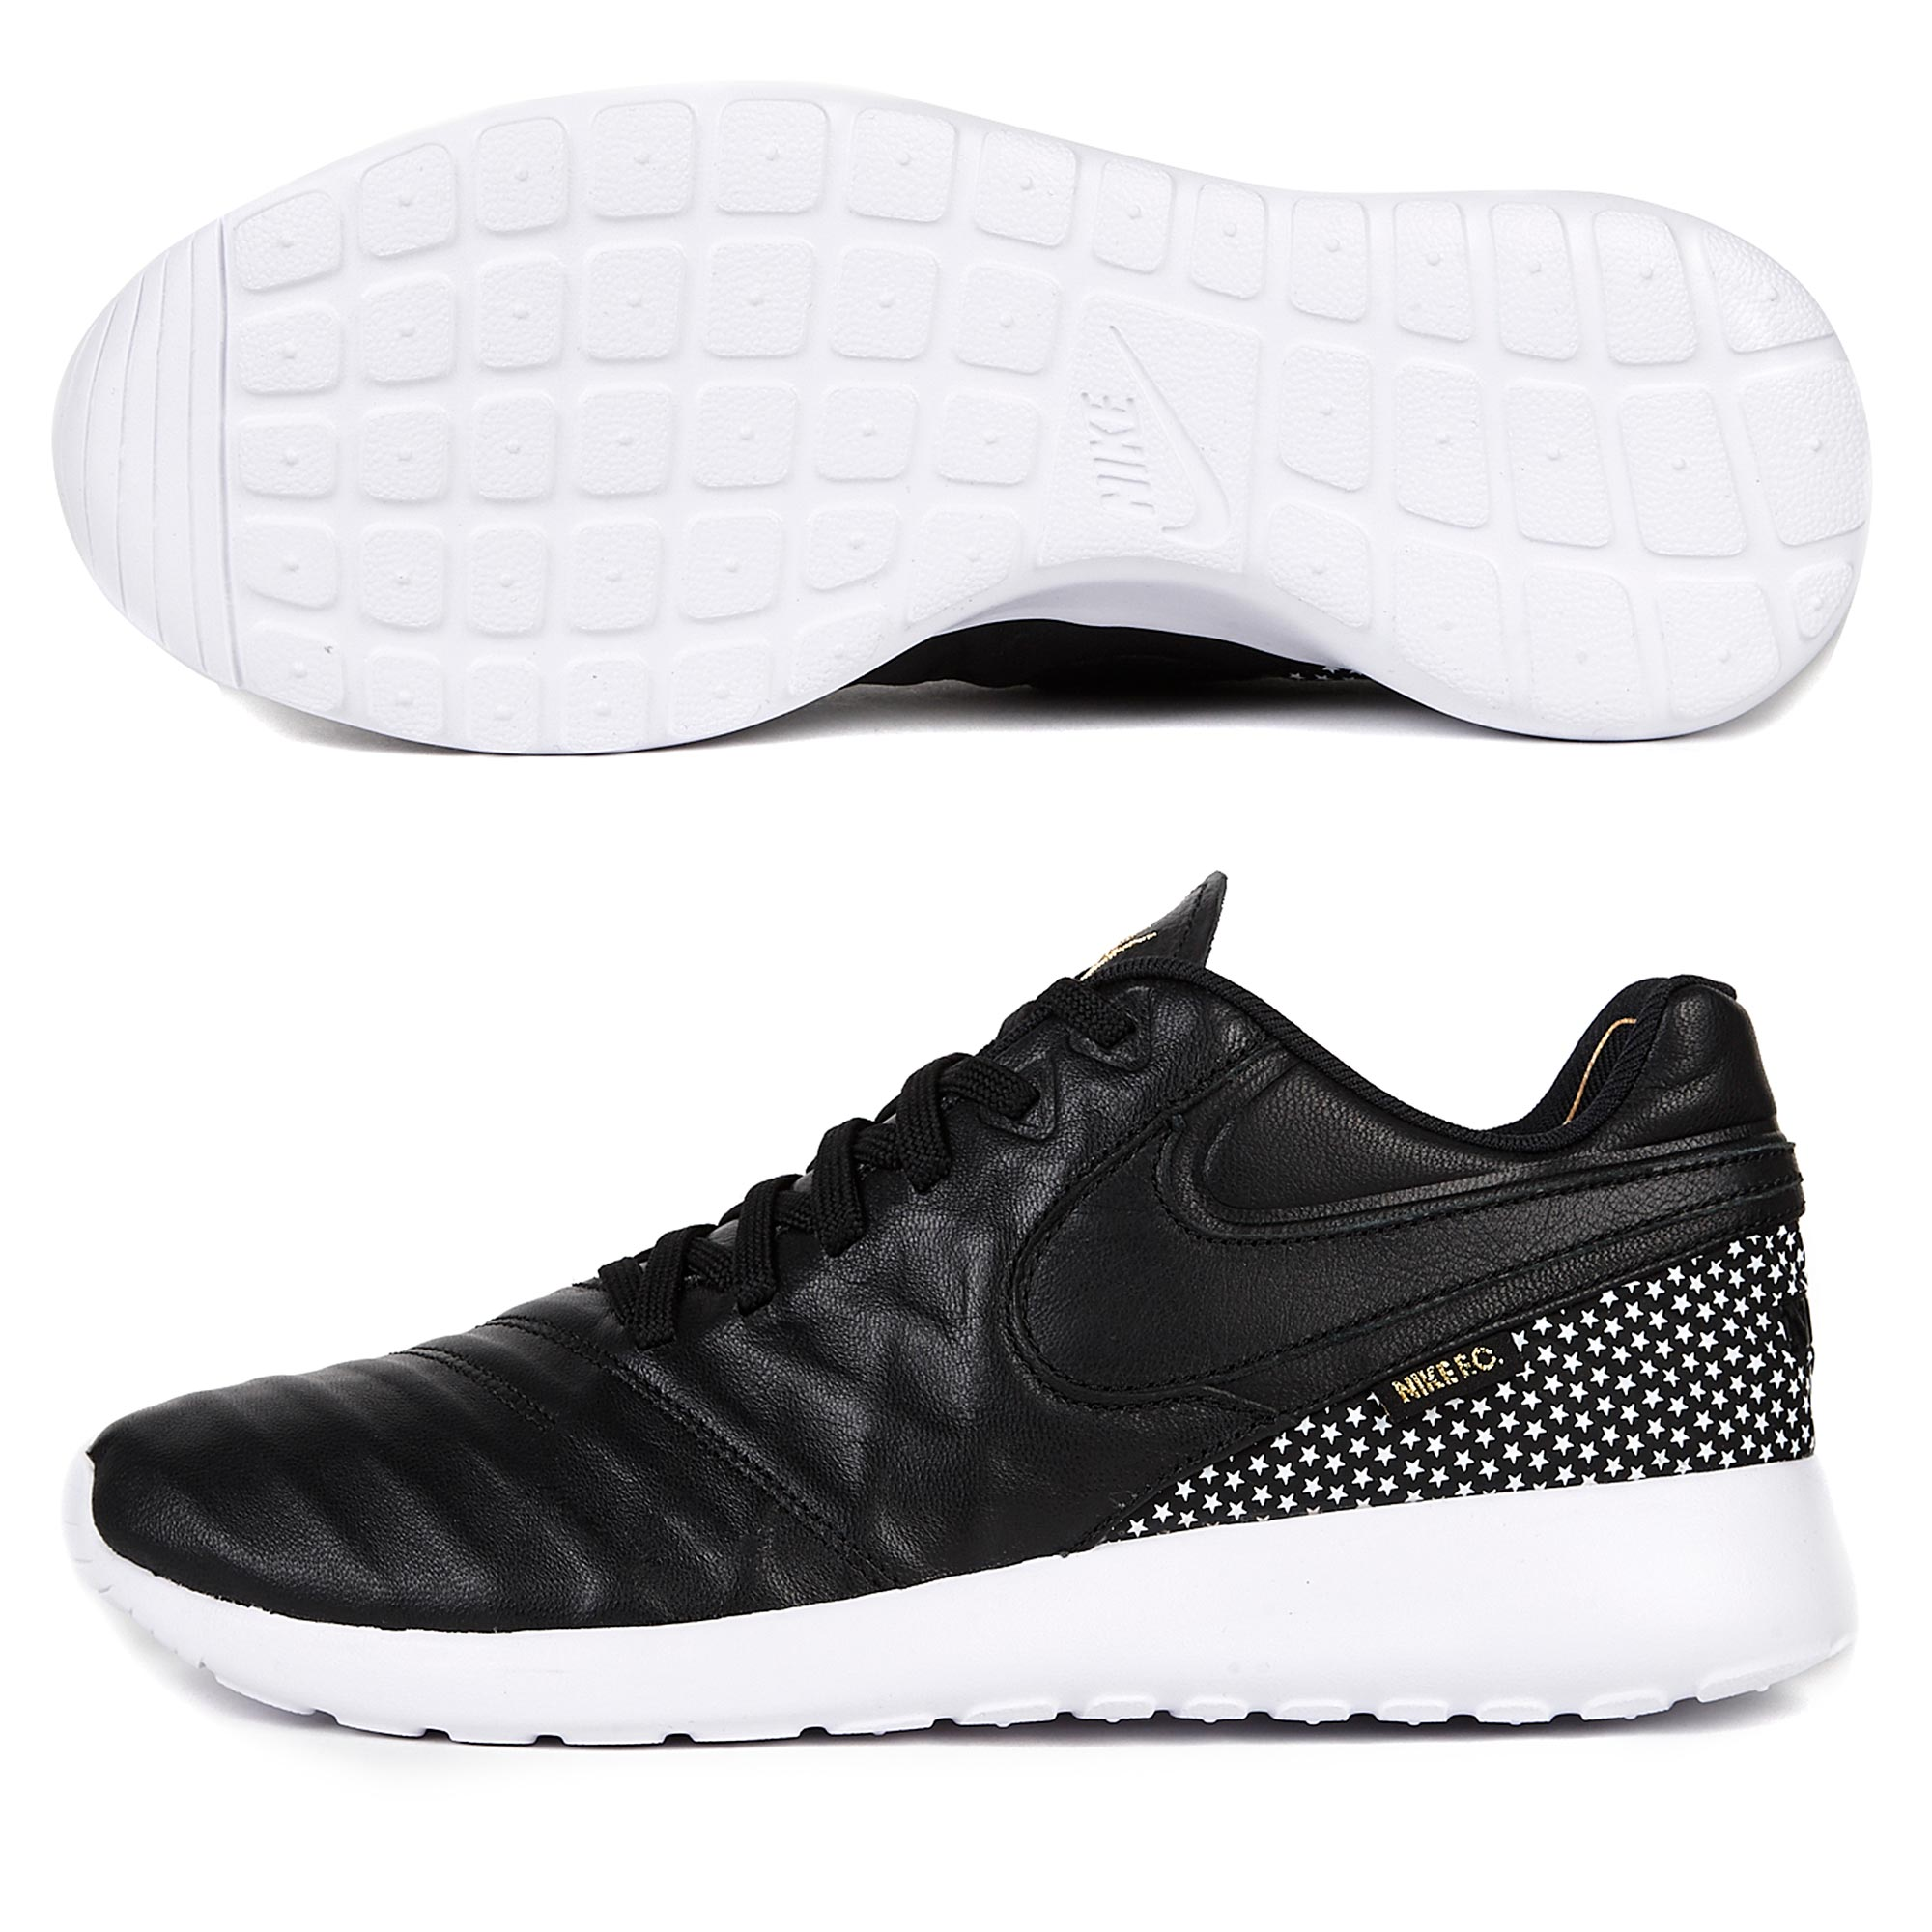 Nike F.C. Roshe Tiempo VI Fc Trainers - Black/White/Metallic Gold